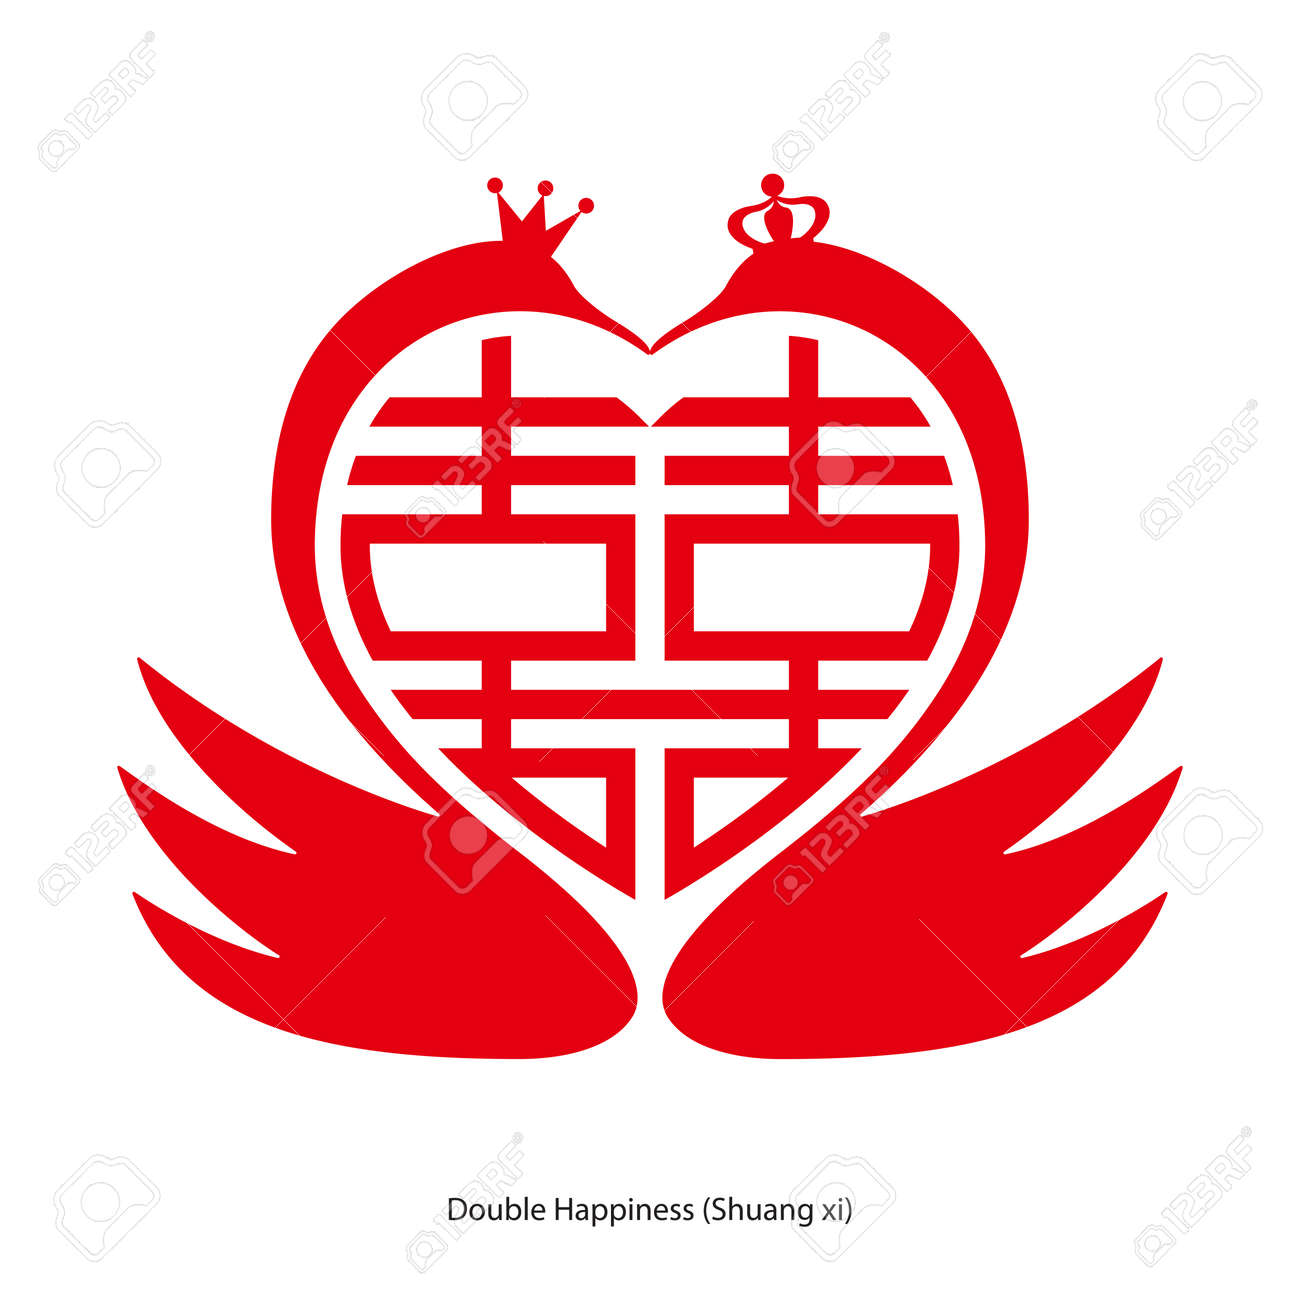 Chinese Character Double Happiness In Heart Shape With Double